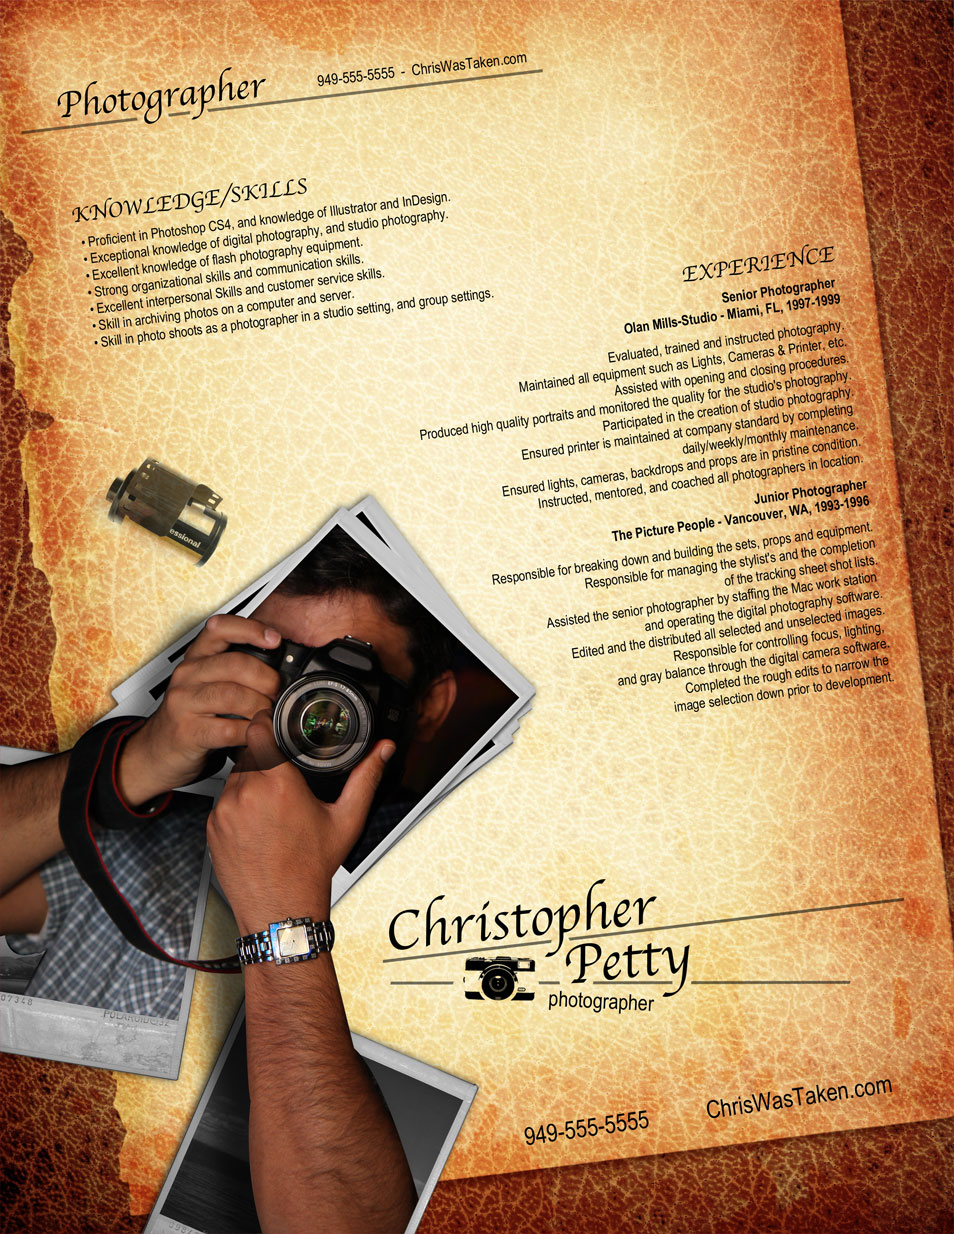 Opposenewapstandardsus  Picturesque  Creative Cvresume Design Inspiration With Gorgeous Resume Photographer With Delightful How Long Should Resume Be Also Resume Accents In Addition Sample College Student Resume And Resume No Experience As Well As What Is Cv Resume Additionally Law School Application Resume From Cssauthorcom With Opposenewapstandardsus  Gorgeous  Creative Cvresume Design Inspiration With Delightful Resume Photographer And Picturesque How Long Should Resume Be Also Resume Accents In Addition Sample College Student Resume From Cssauthorcom